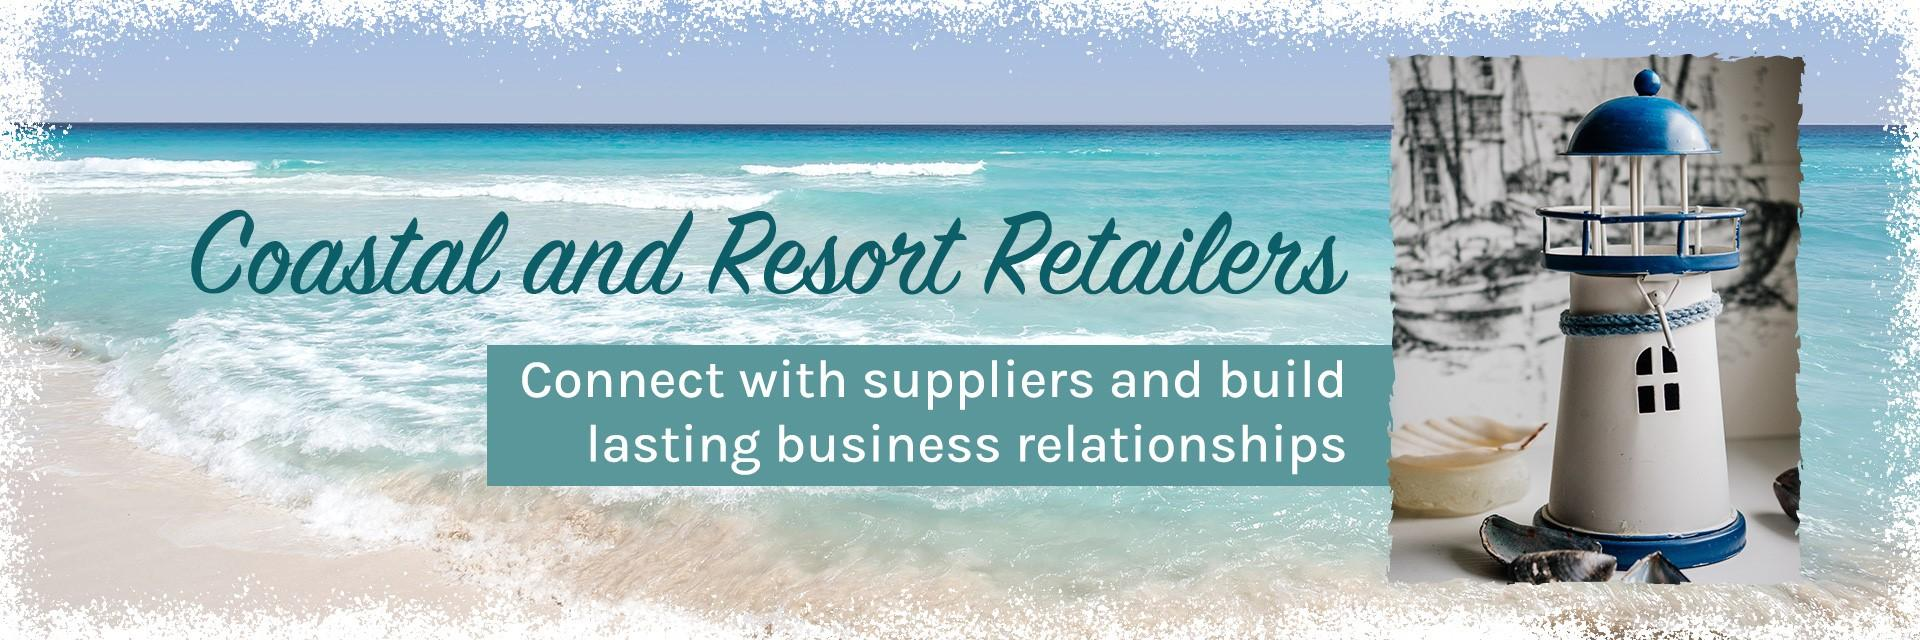 Coastal and resort retailers connect with suppliers and build lasting business relationships